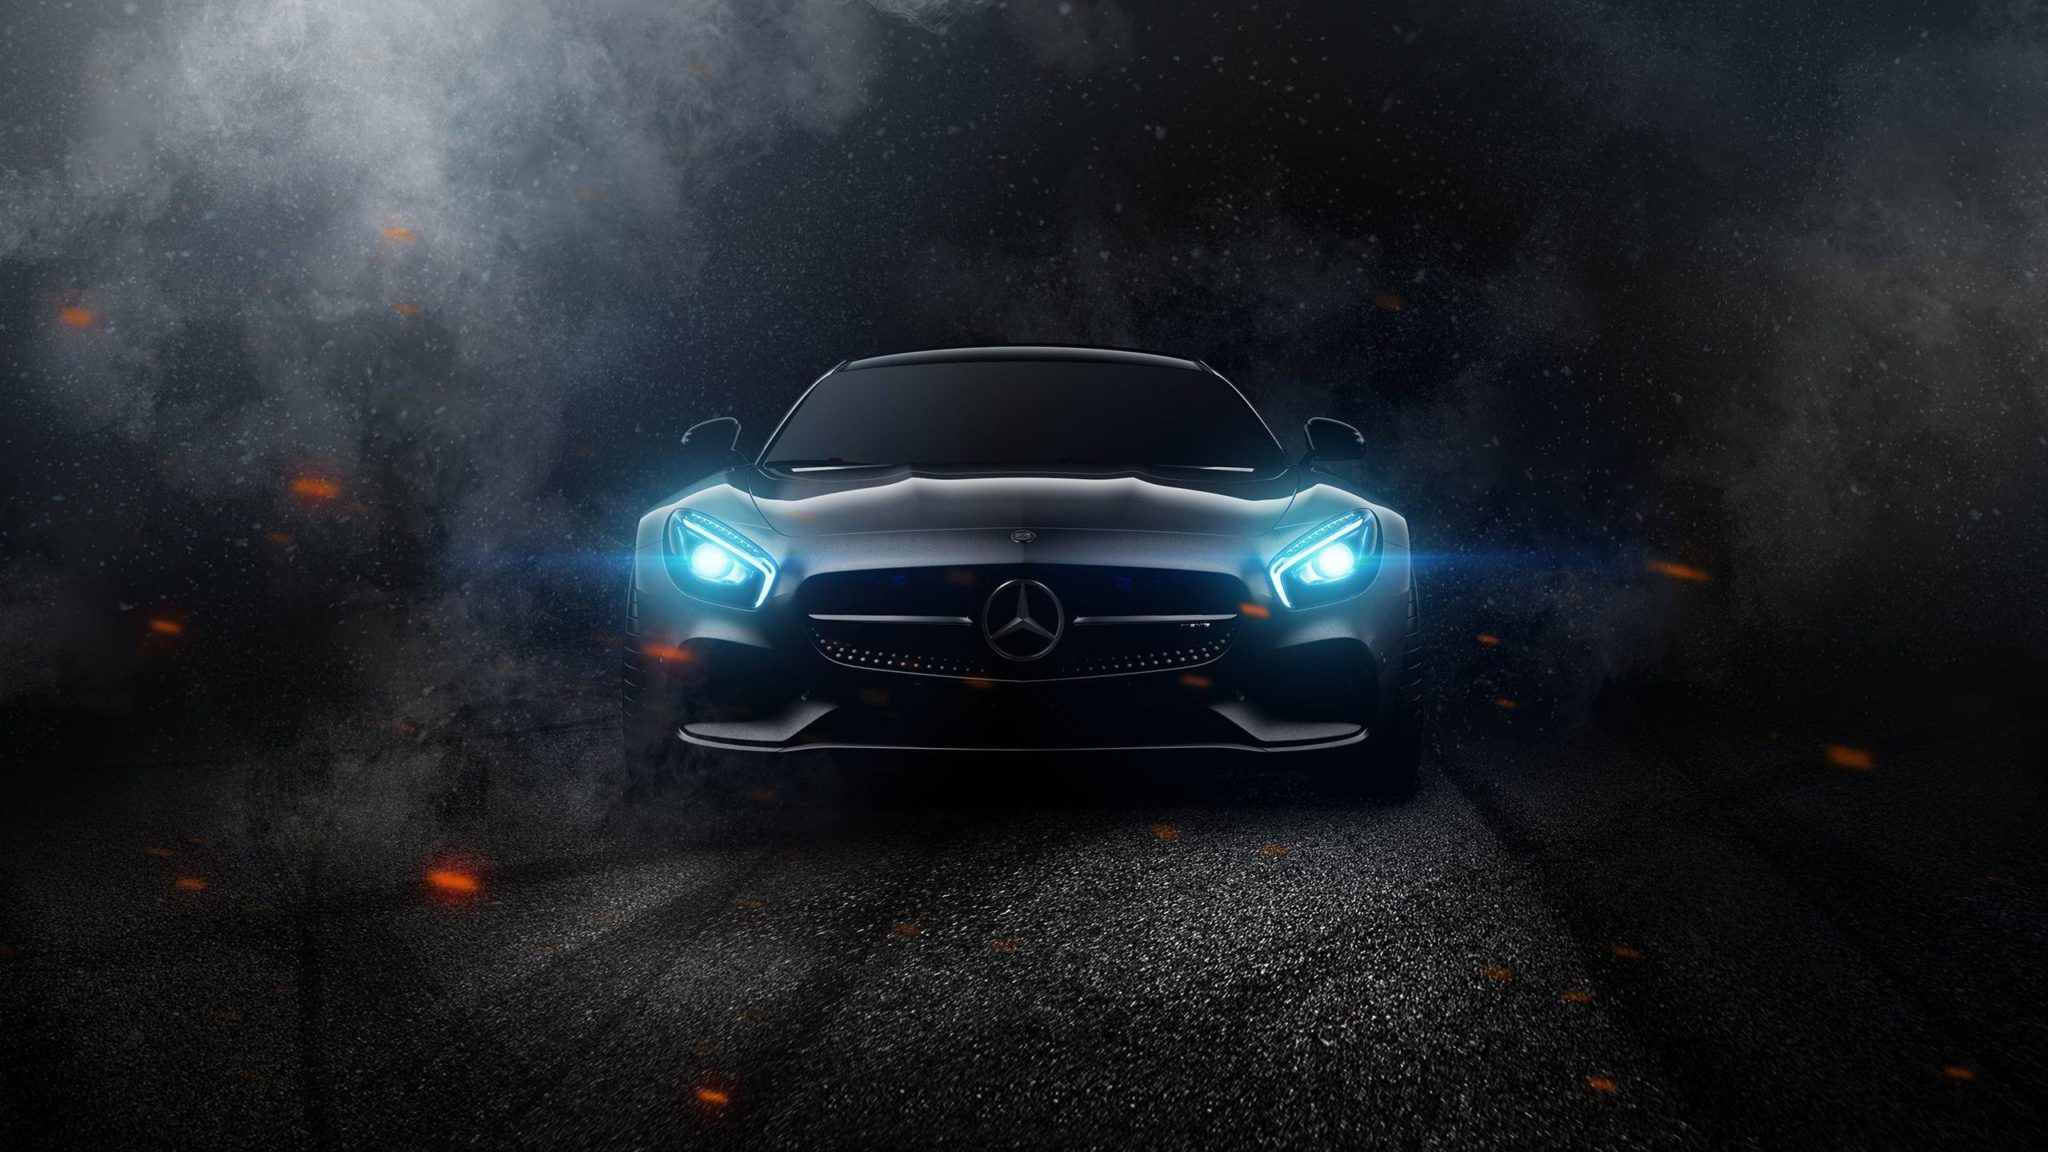 mercedes-benz free full hd wallpapers (90) http://www.urdunewtrend